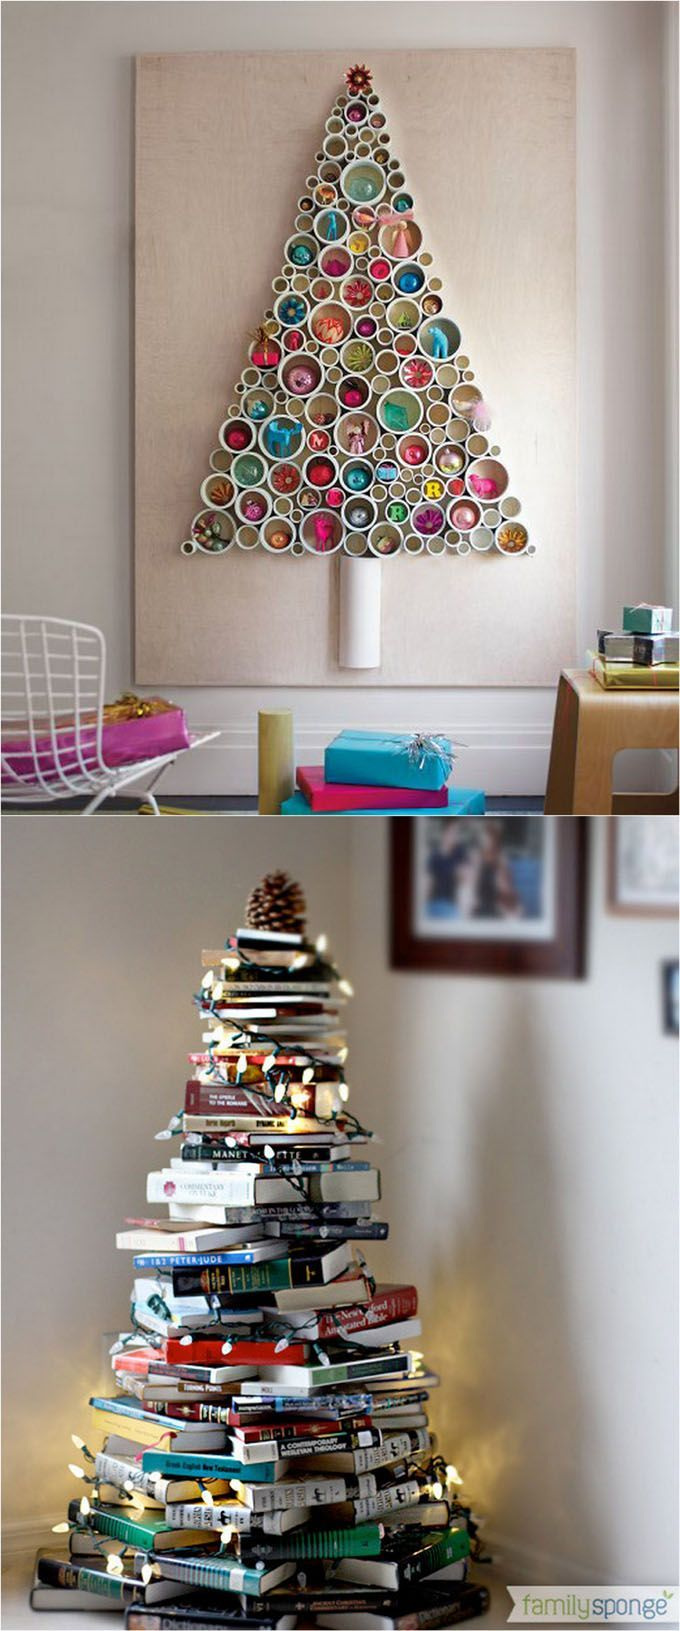 18 Unconventional and beautiful DIY Christmas trees : ideas to create unique Christmas decorations for your home, perfect for any space in your home! - A Piece Of Rainbow